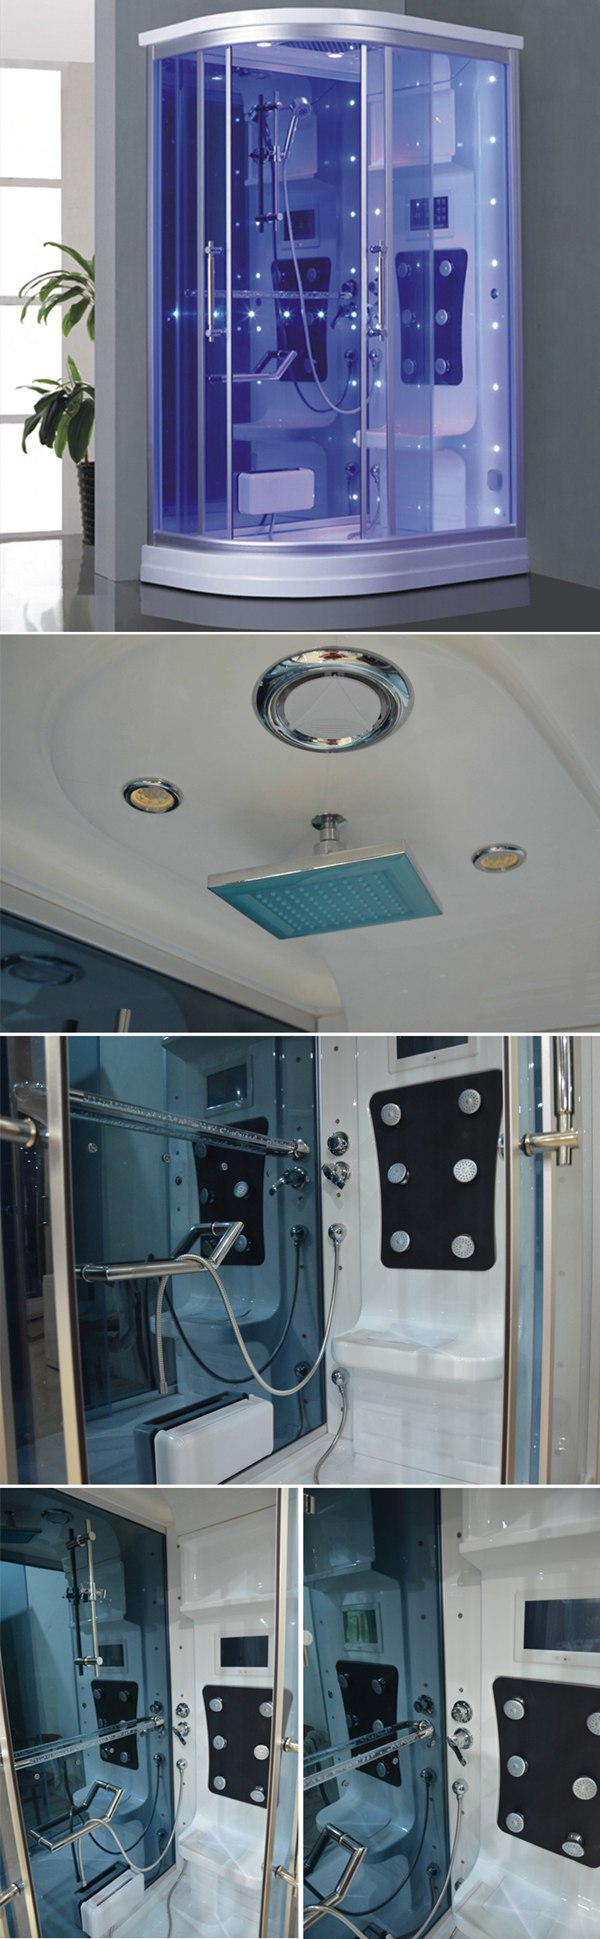 HS-SR010 Steam shower room cabin/ Massage steam shower room / 1 person steam room